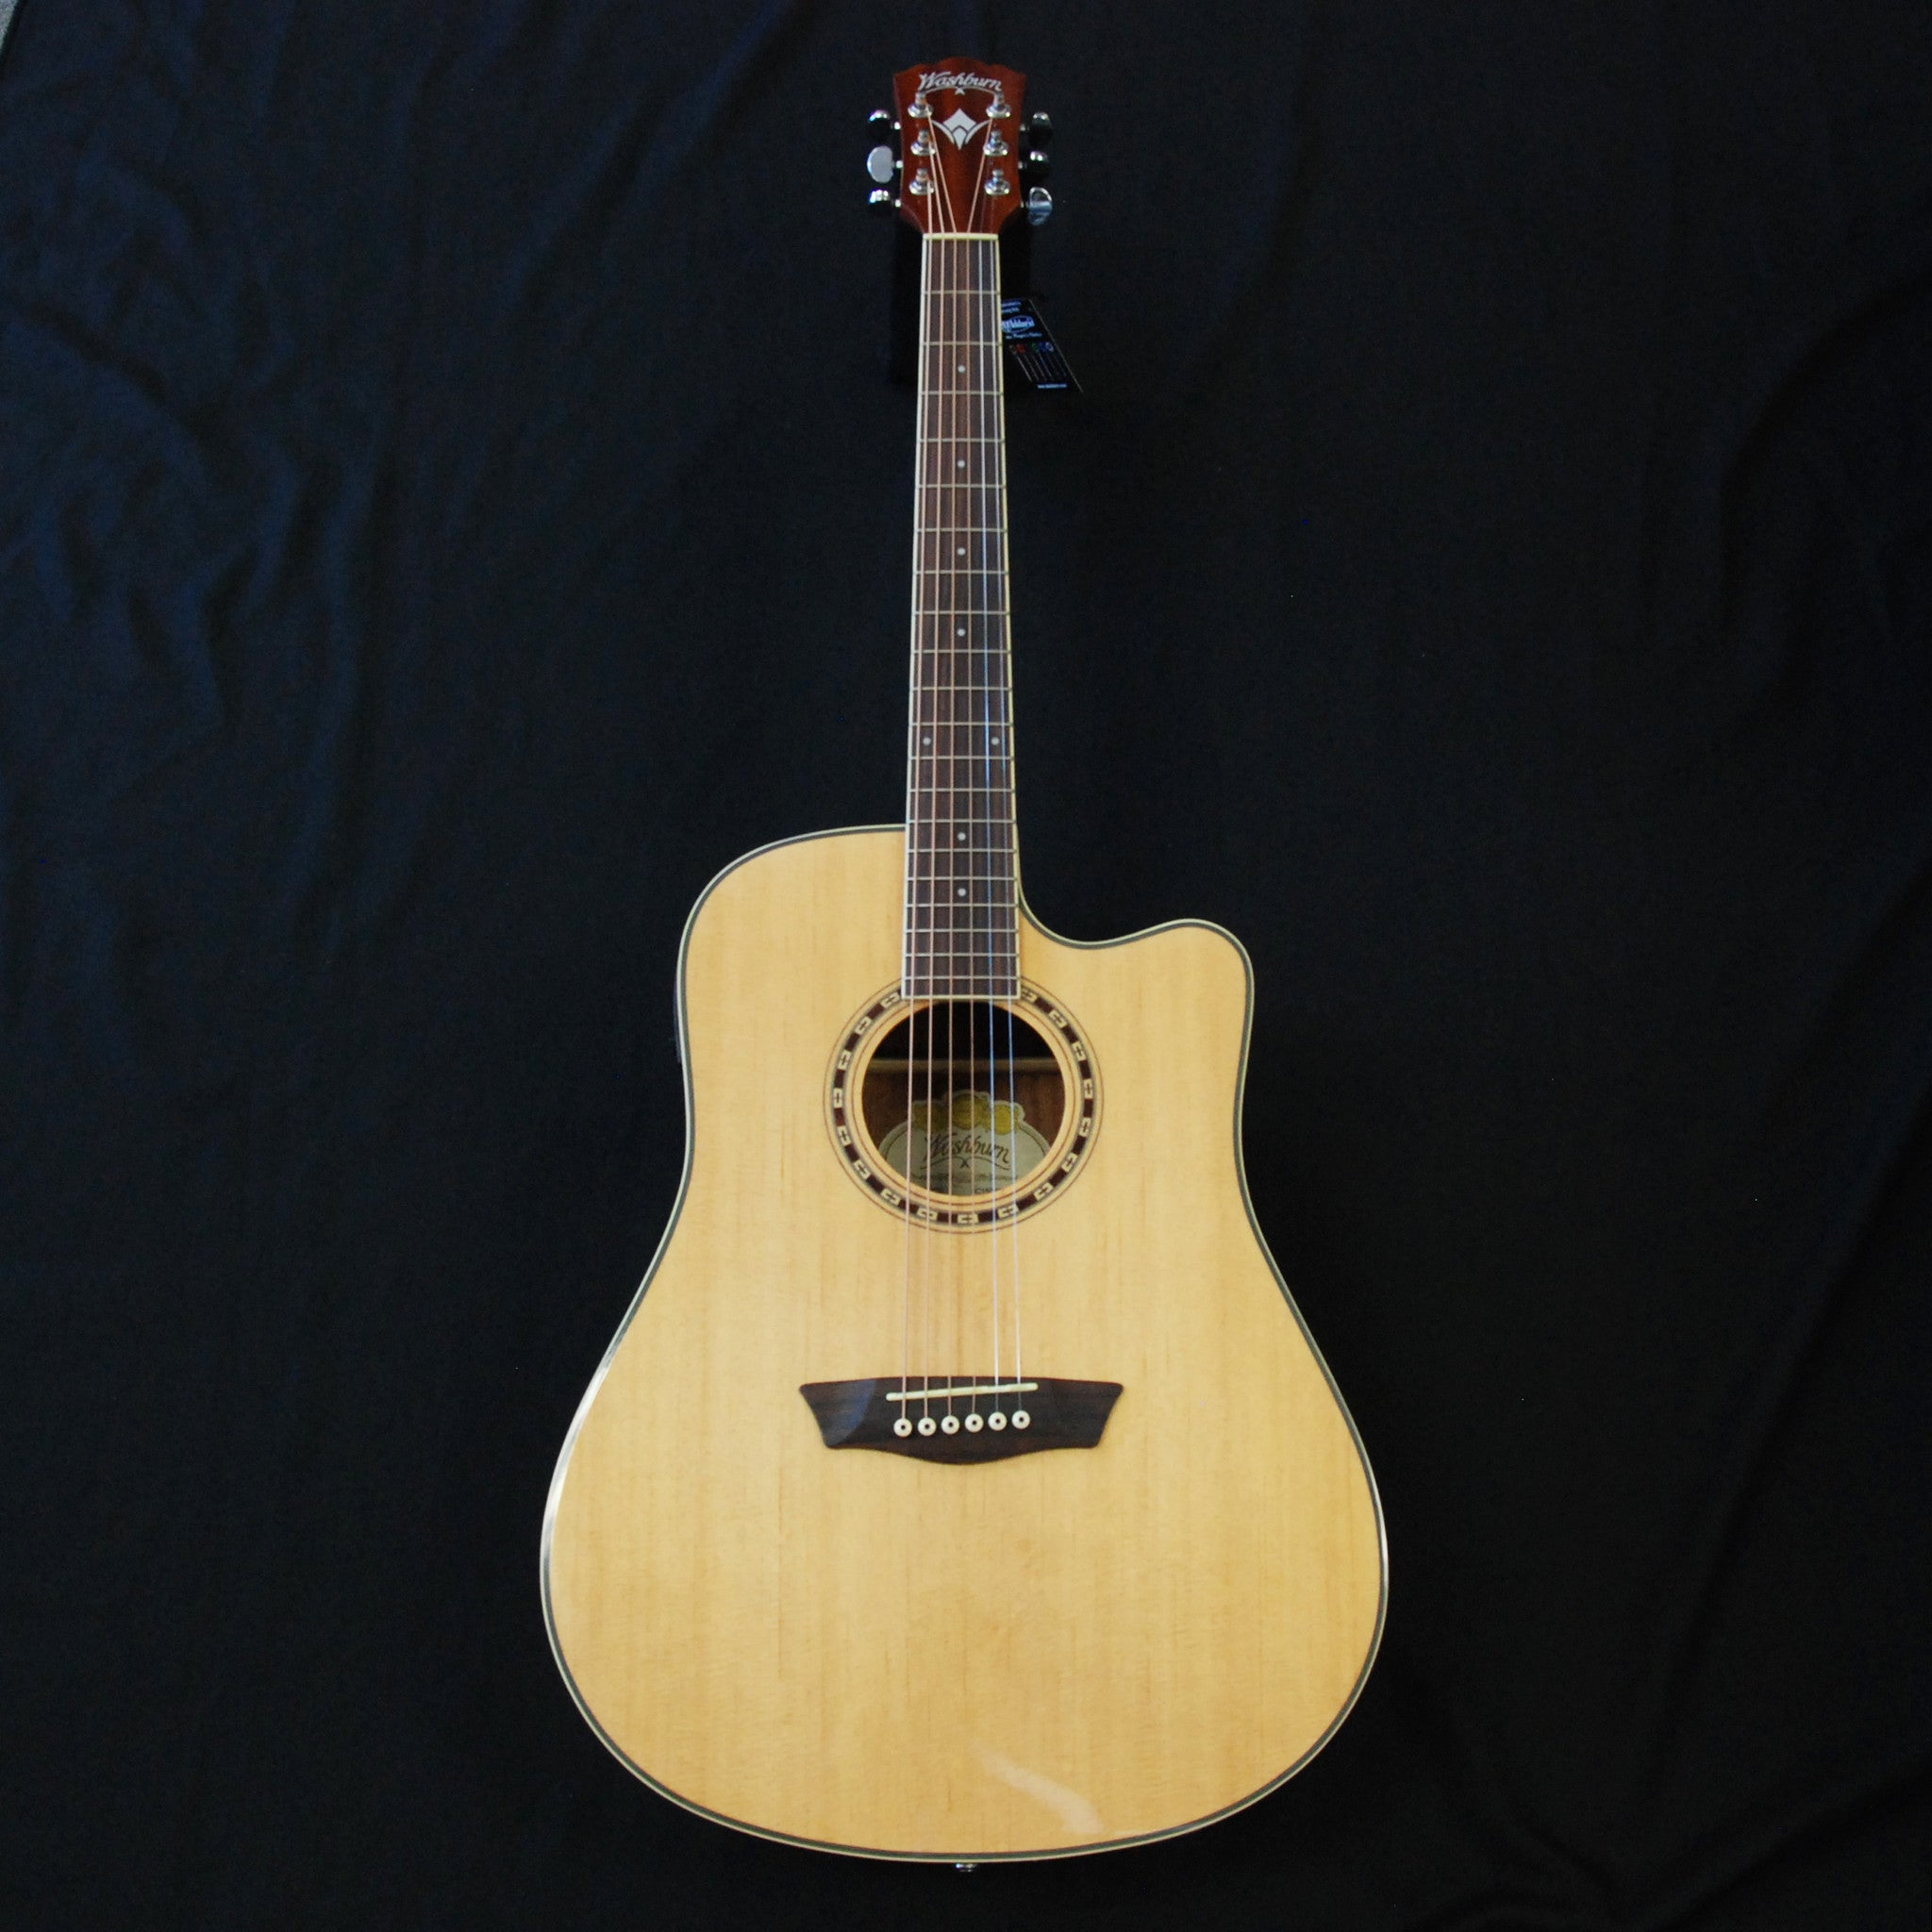 washburn harvest series wd7sce dreadnought cutaway acoustic electric g midlothian music. Black Bedroom Furniture Sets. Home Design Ideas